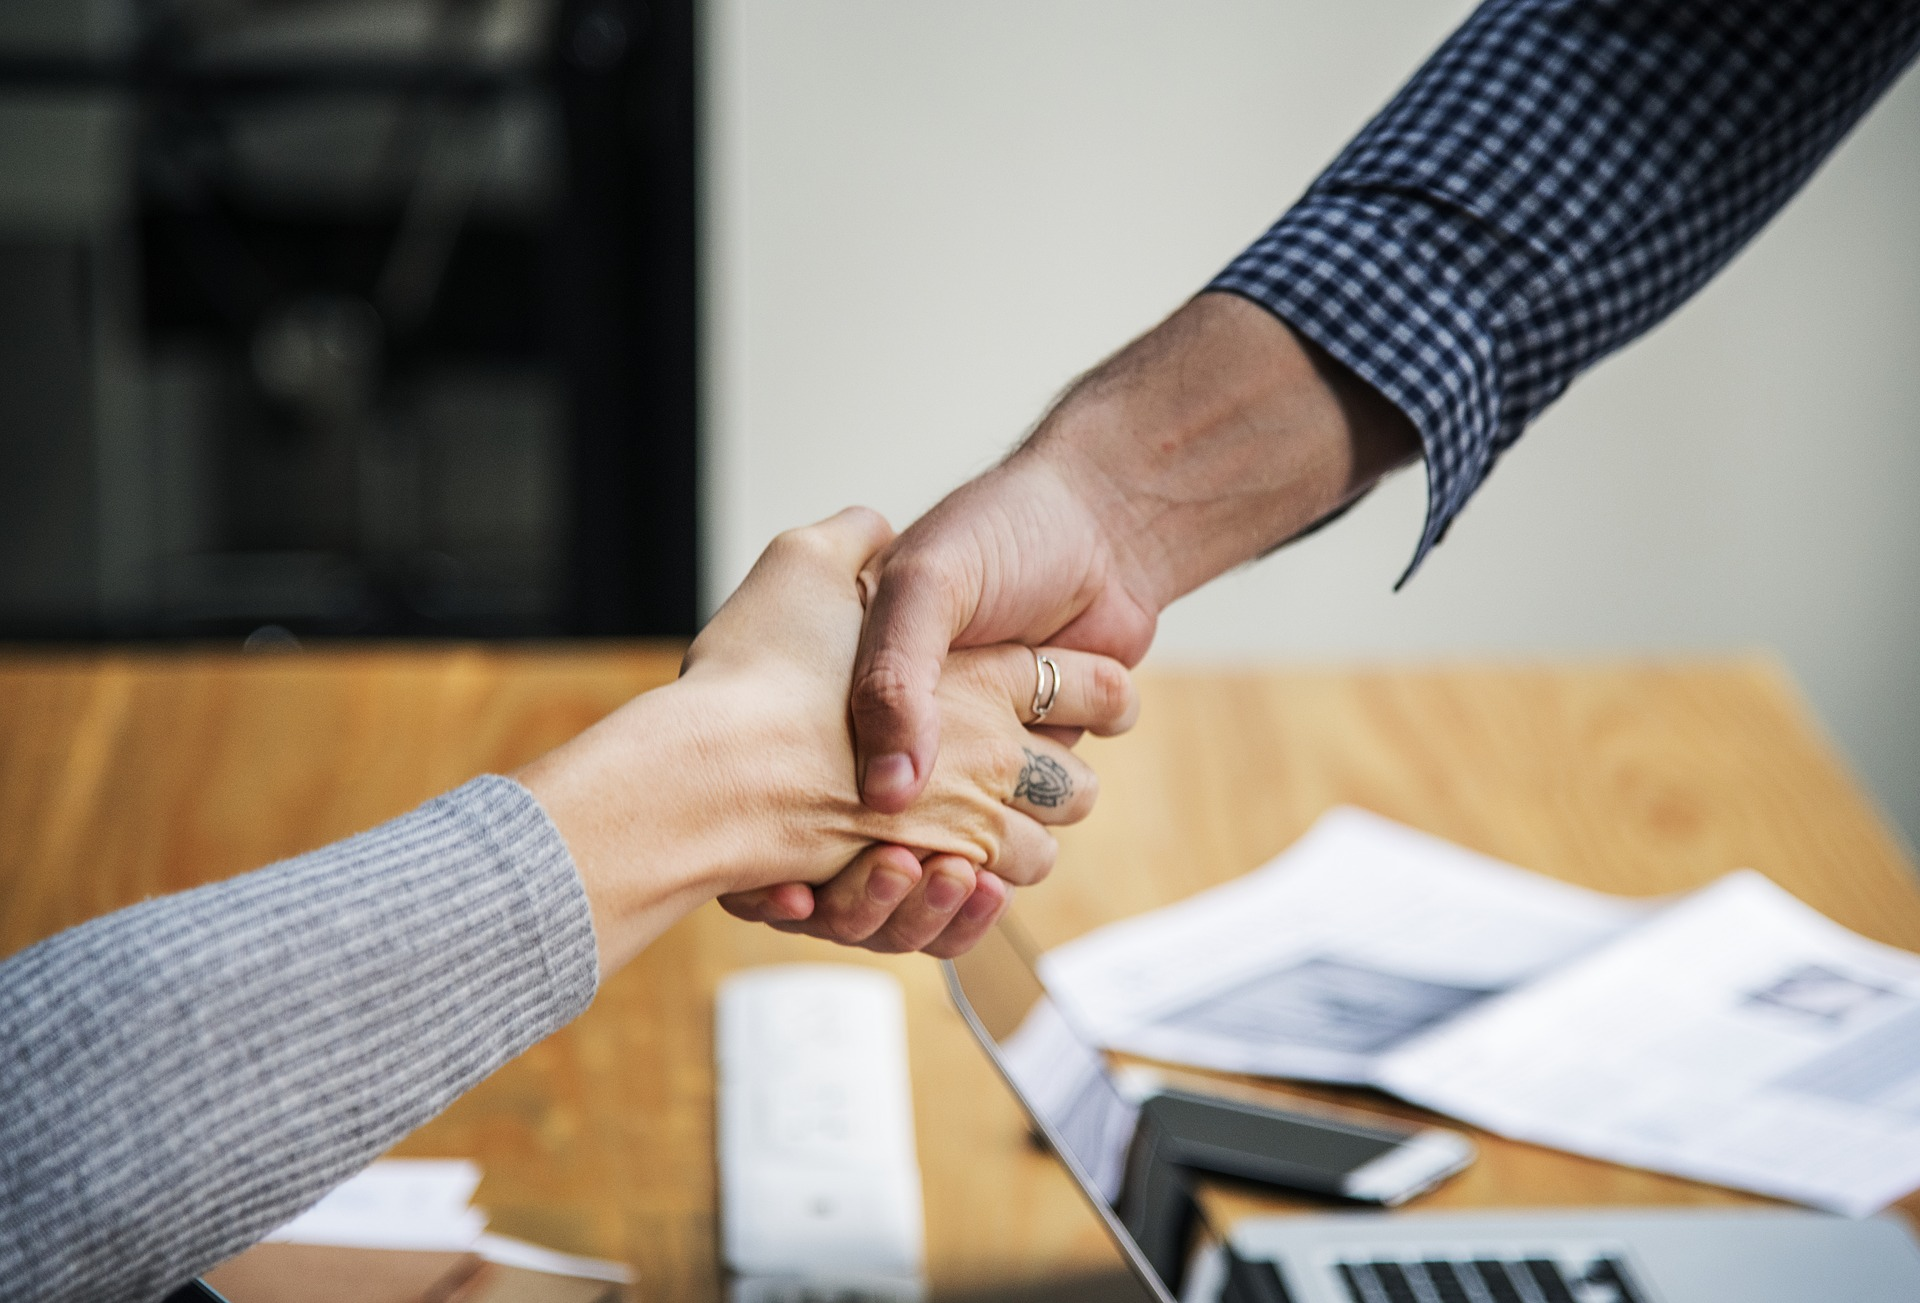 Two hands handshaking above an office desk illustrating business partners.